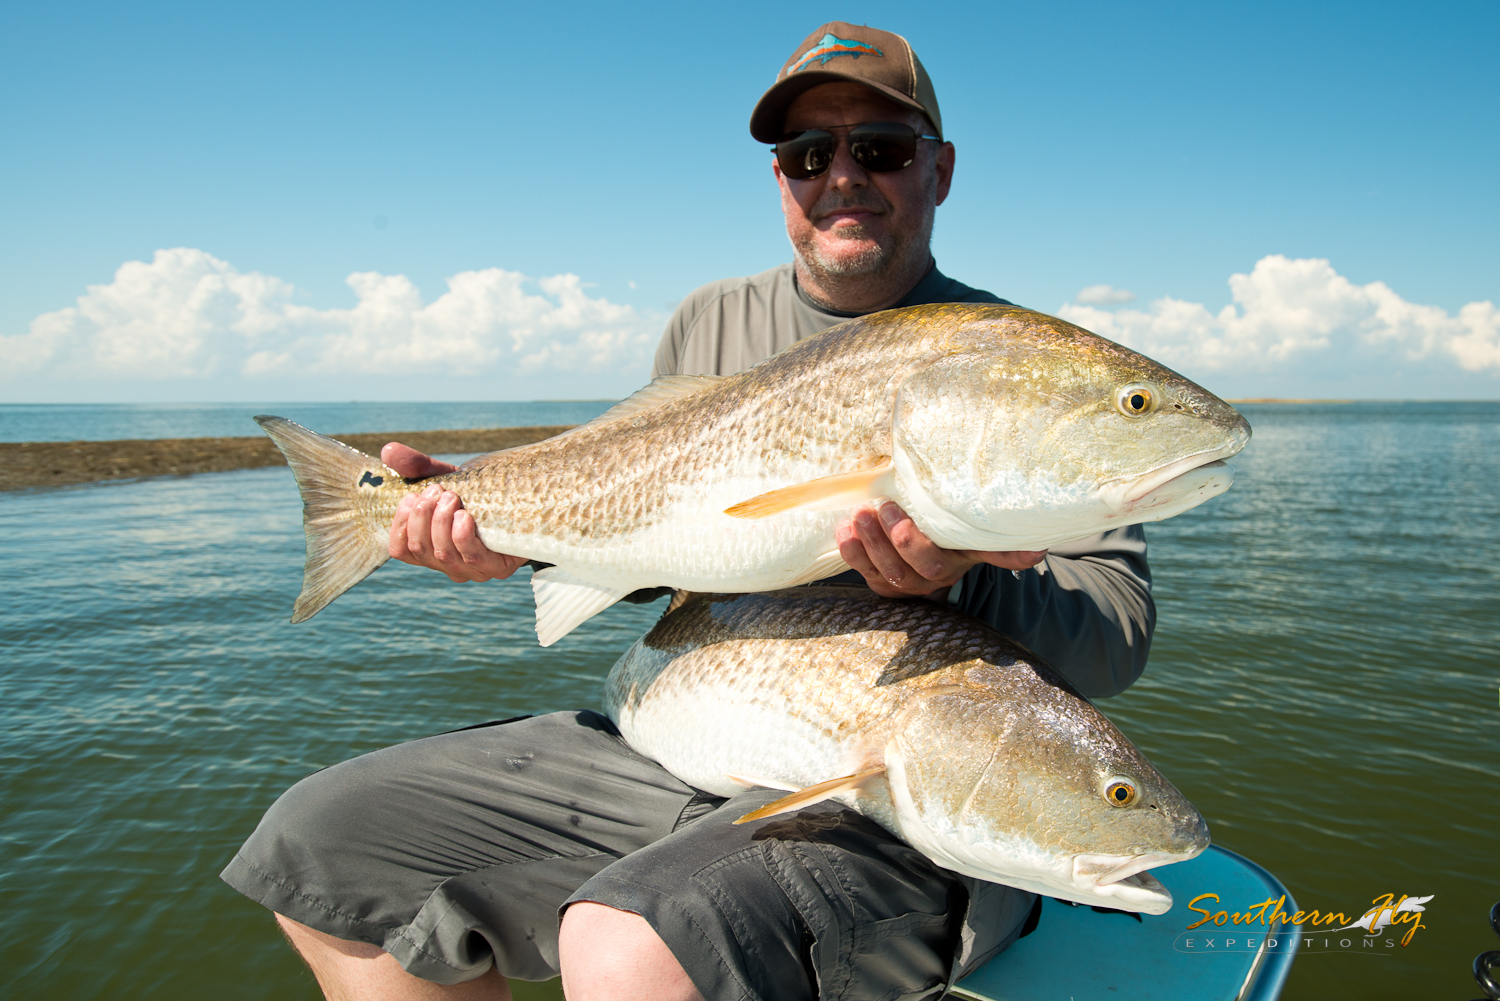 fly fishing charters new orleans la - the best fly fishing guide in Louisiana